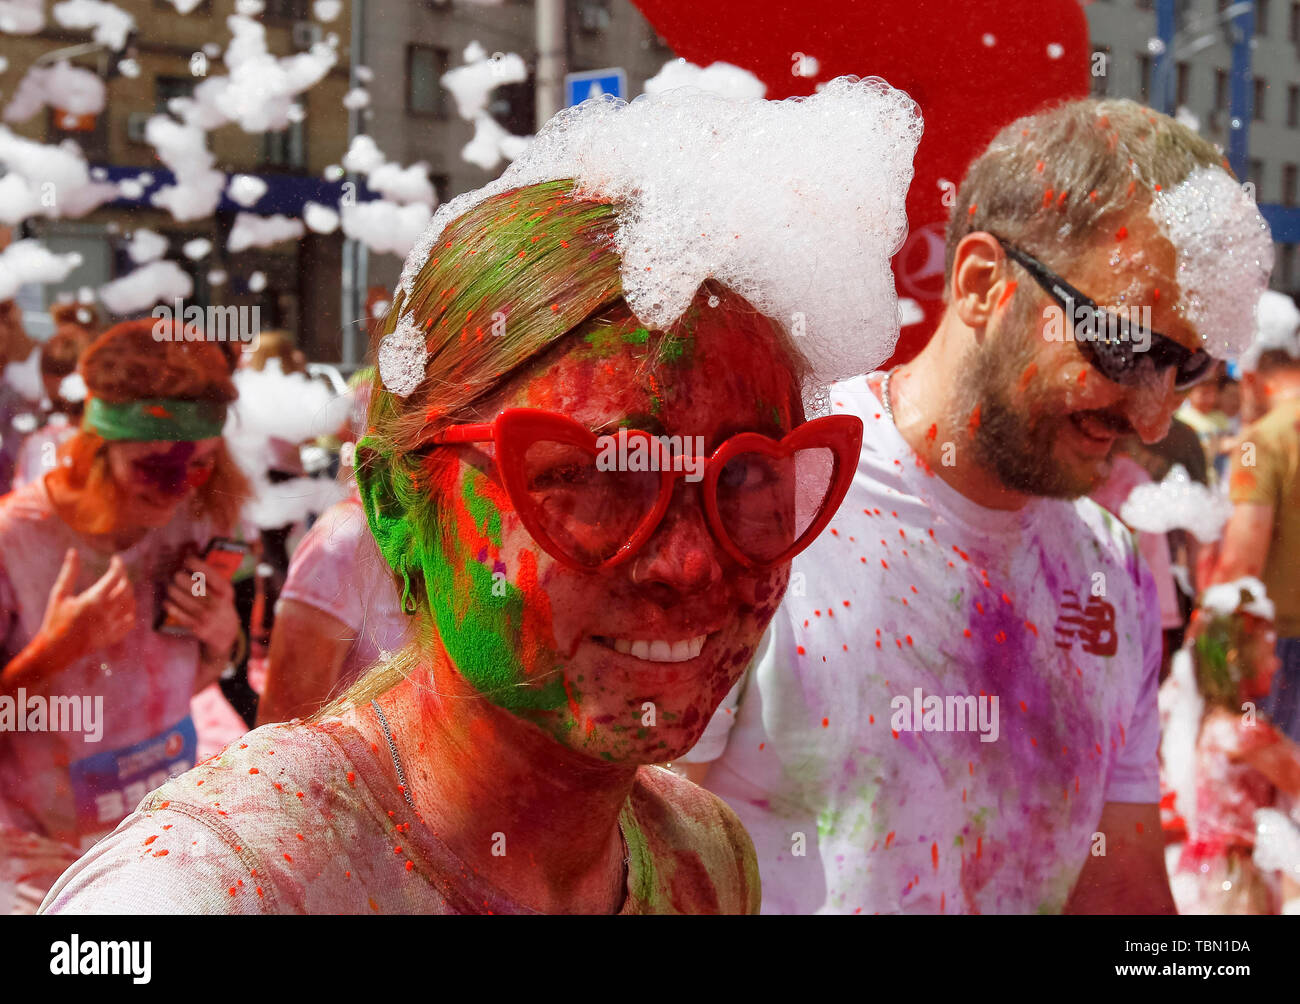 Woman with heart glasses showered in colours during the event. The Color Run, also known as 'the happiest 5,000 meters on the planet', is an event series and paint race, its first event was in the United States in January 2012 since then the run has spread across the globe leaving a trail of color and happy runners across different continents and countries. The untimed event has no winners or prizes, but runners are showered with colored powder, made of food-grade corn starch, at stations along the run. In Ukrainian capital the first time Kyiv Color Run started in 2014. - Stock Image